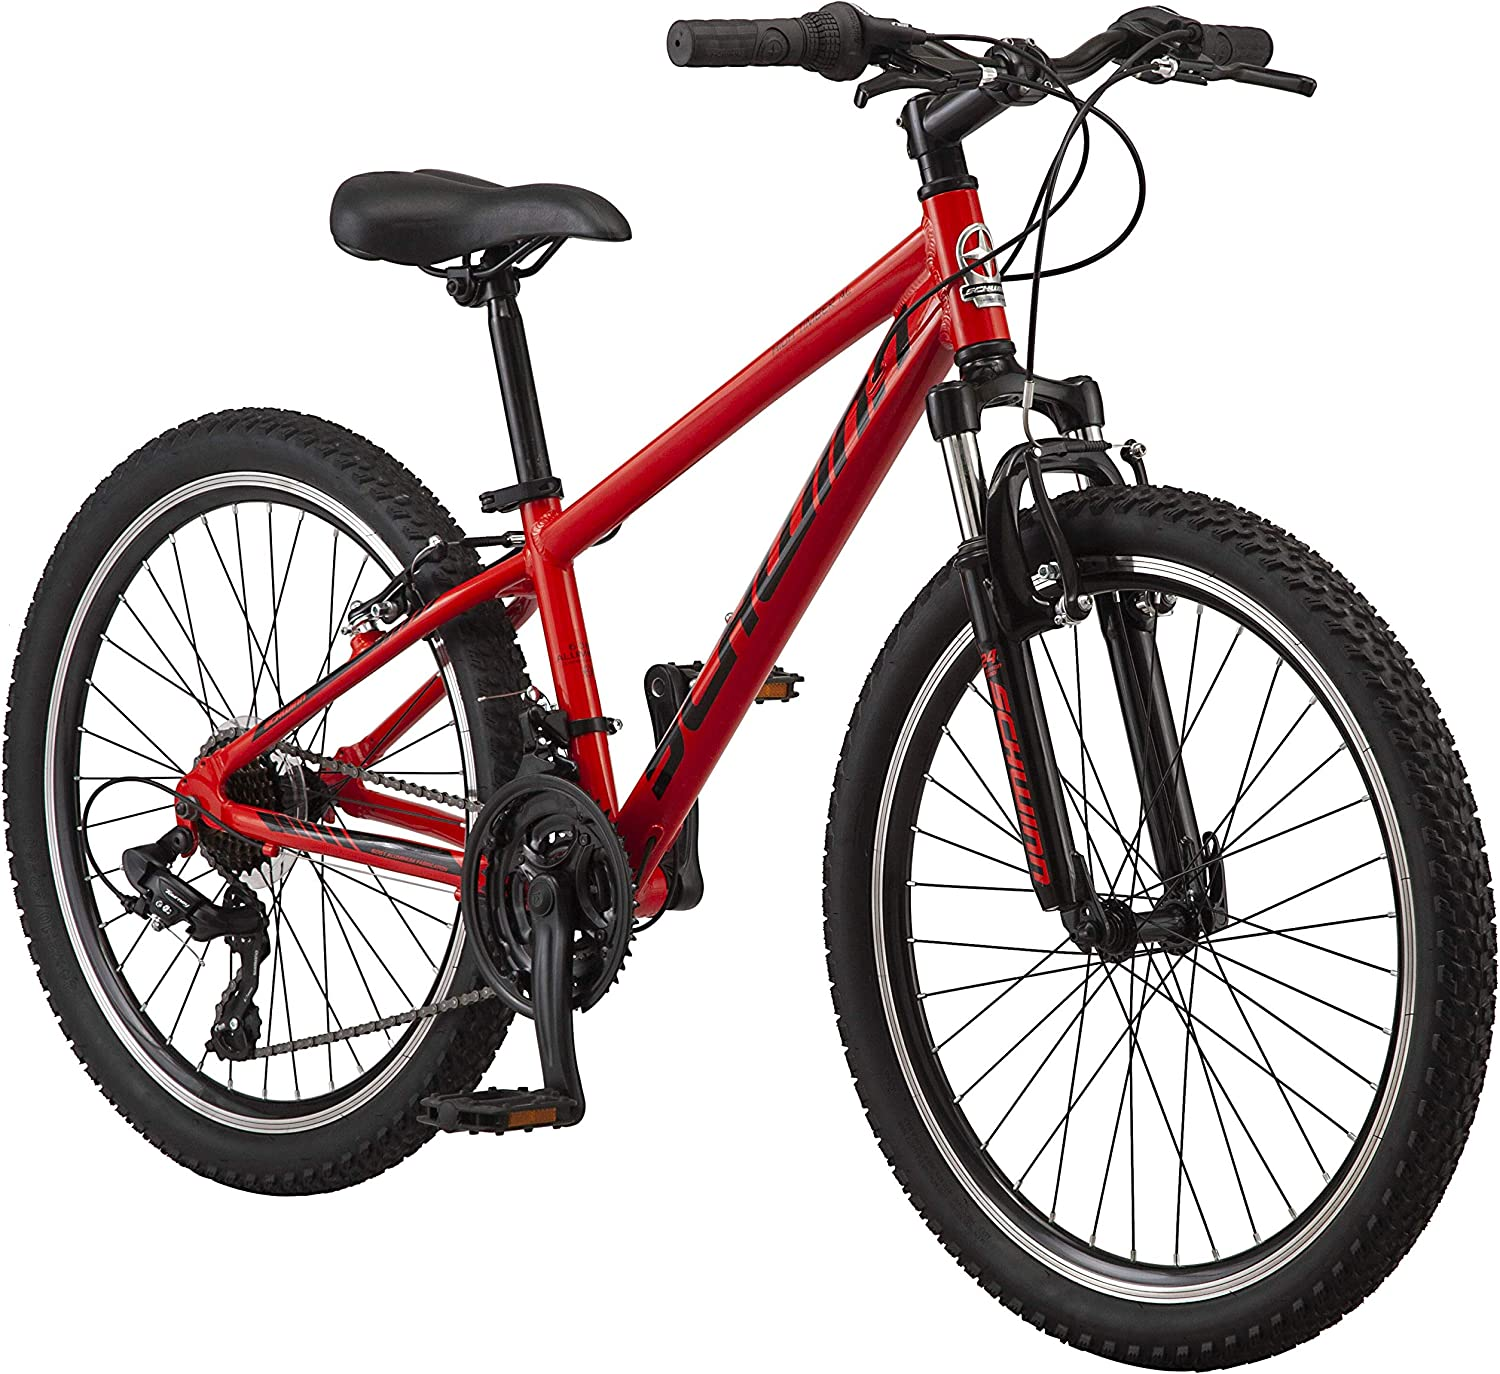 best mountain bike under 500: Schwinn High Timber Mountain Bike